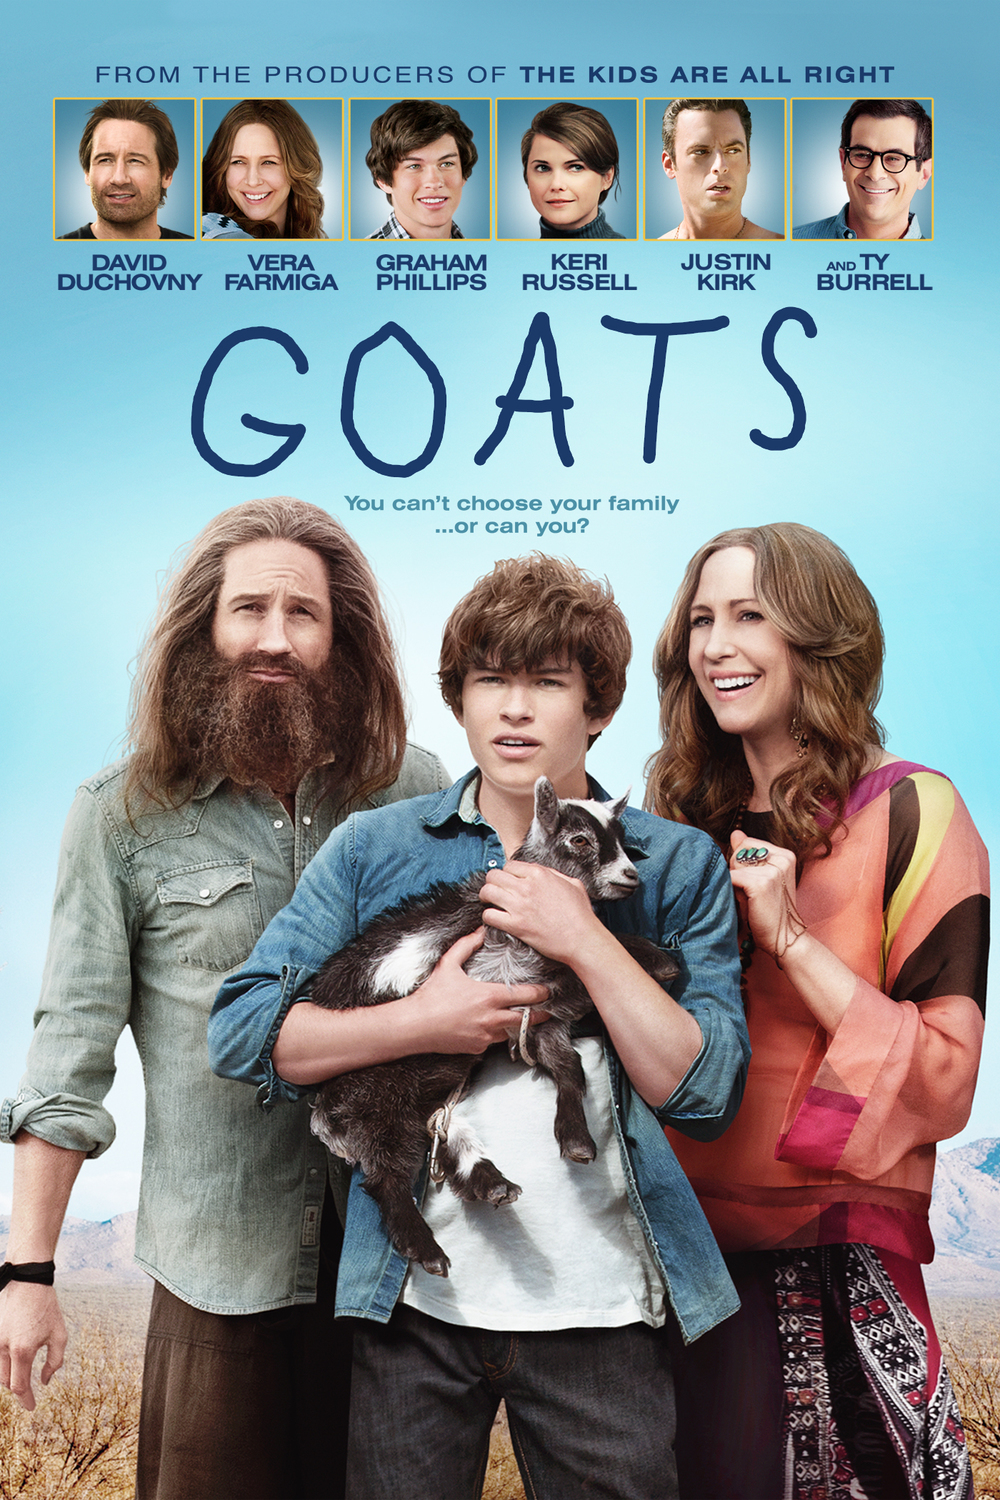 goats-poster-artwork-david-duchovny-vera-farmiga-graham-phillips.jpg